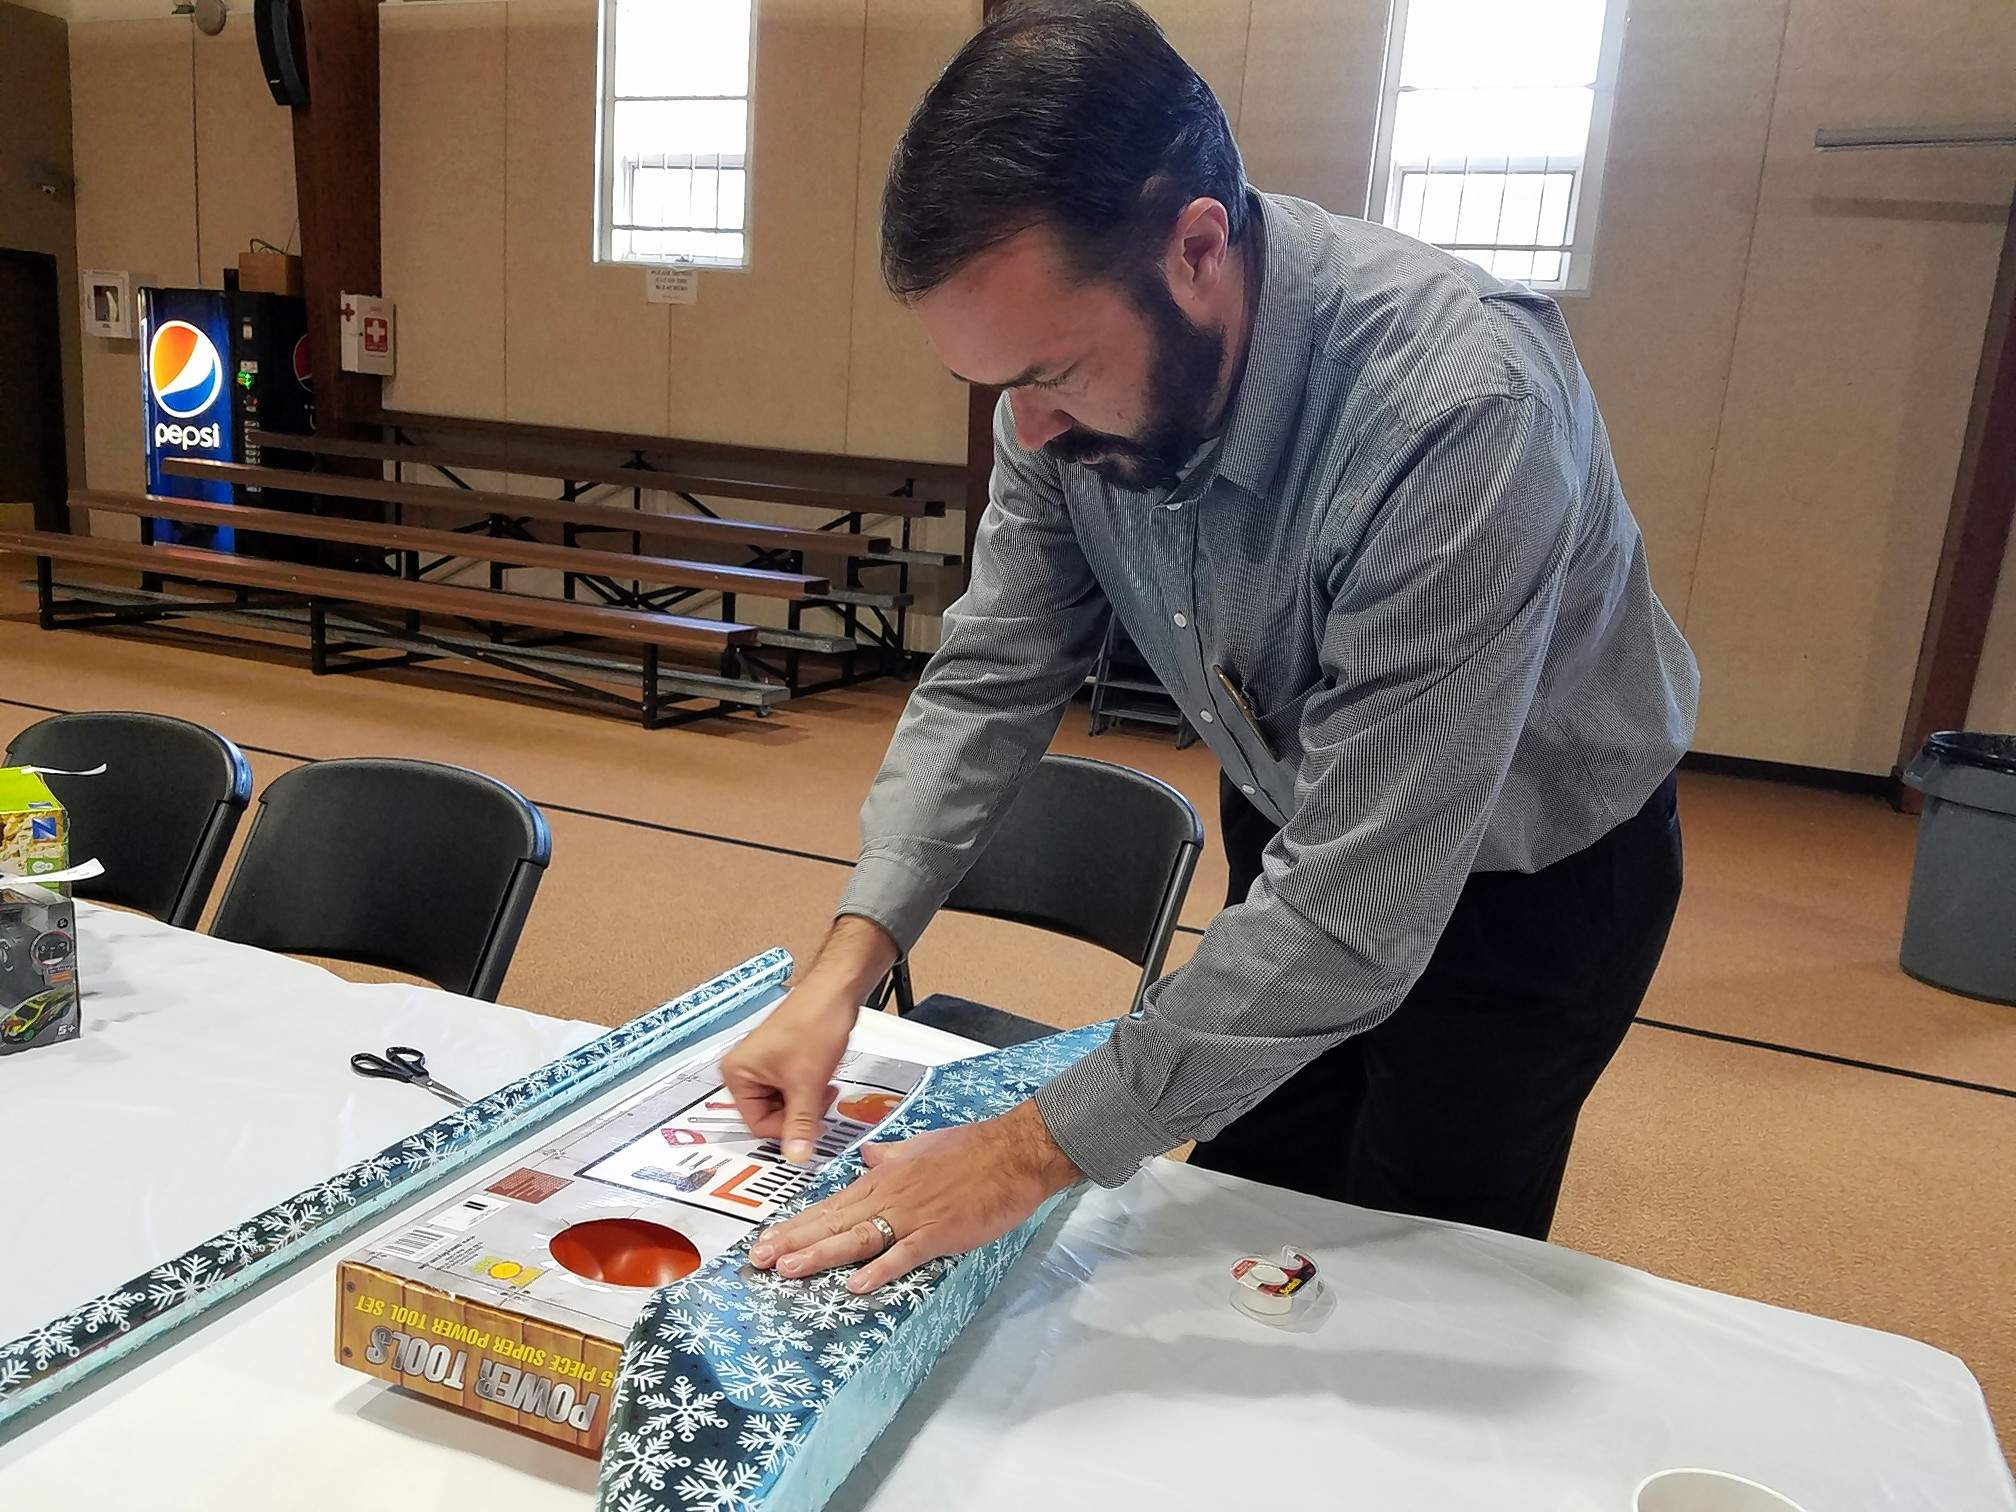 Marion Lions Club member Brad Miller was busy wrapping Christmas presents for children at Wednesday's club meeting.